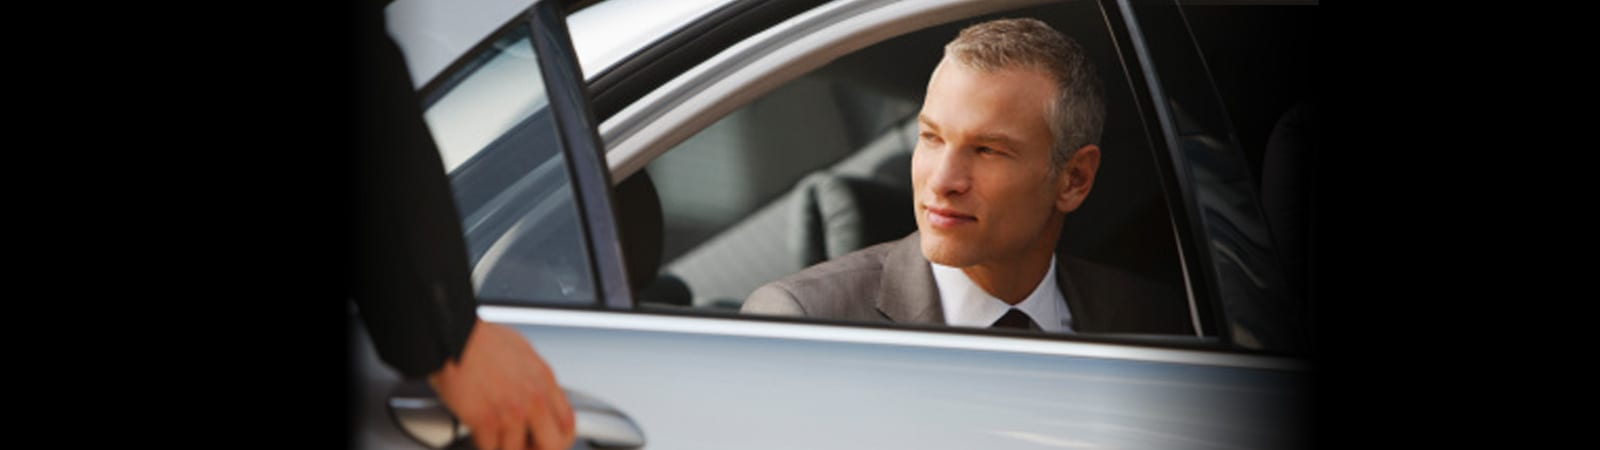 Veho solutions - We offer professional driver services at the highest quality